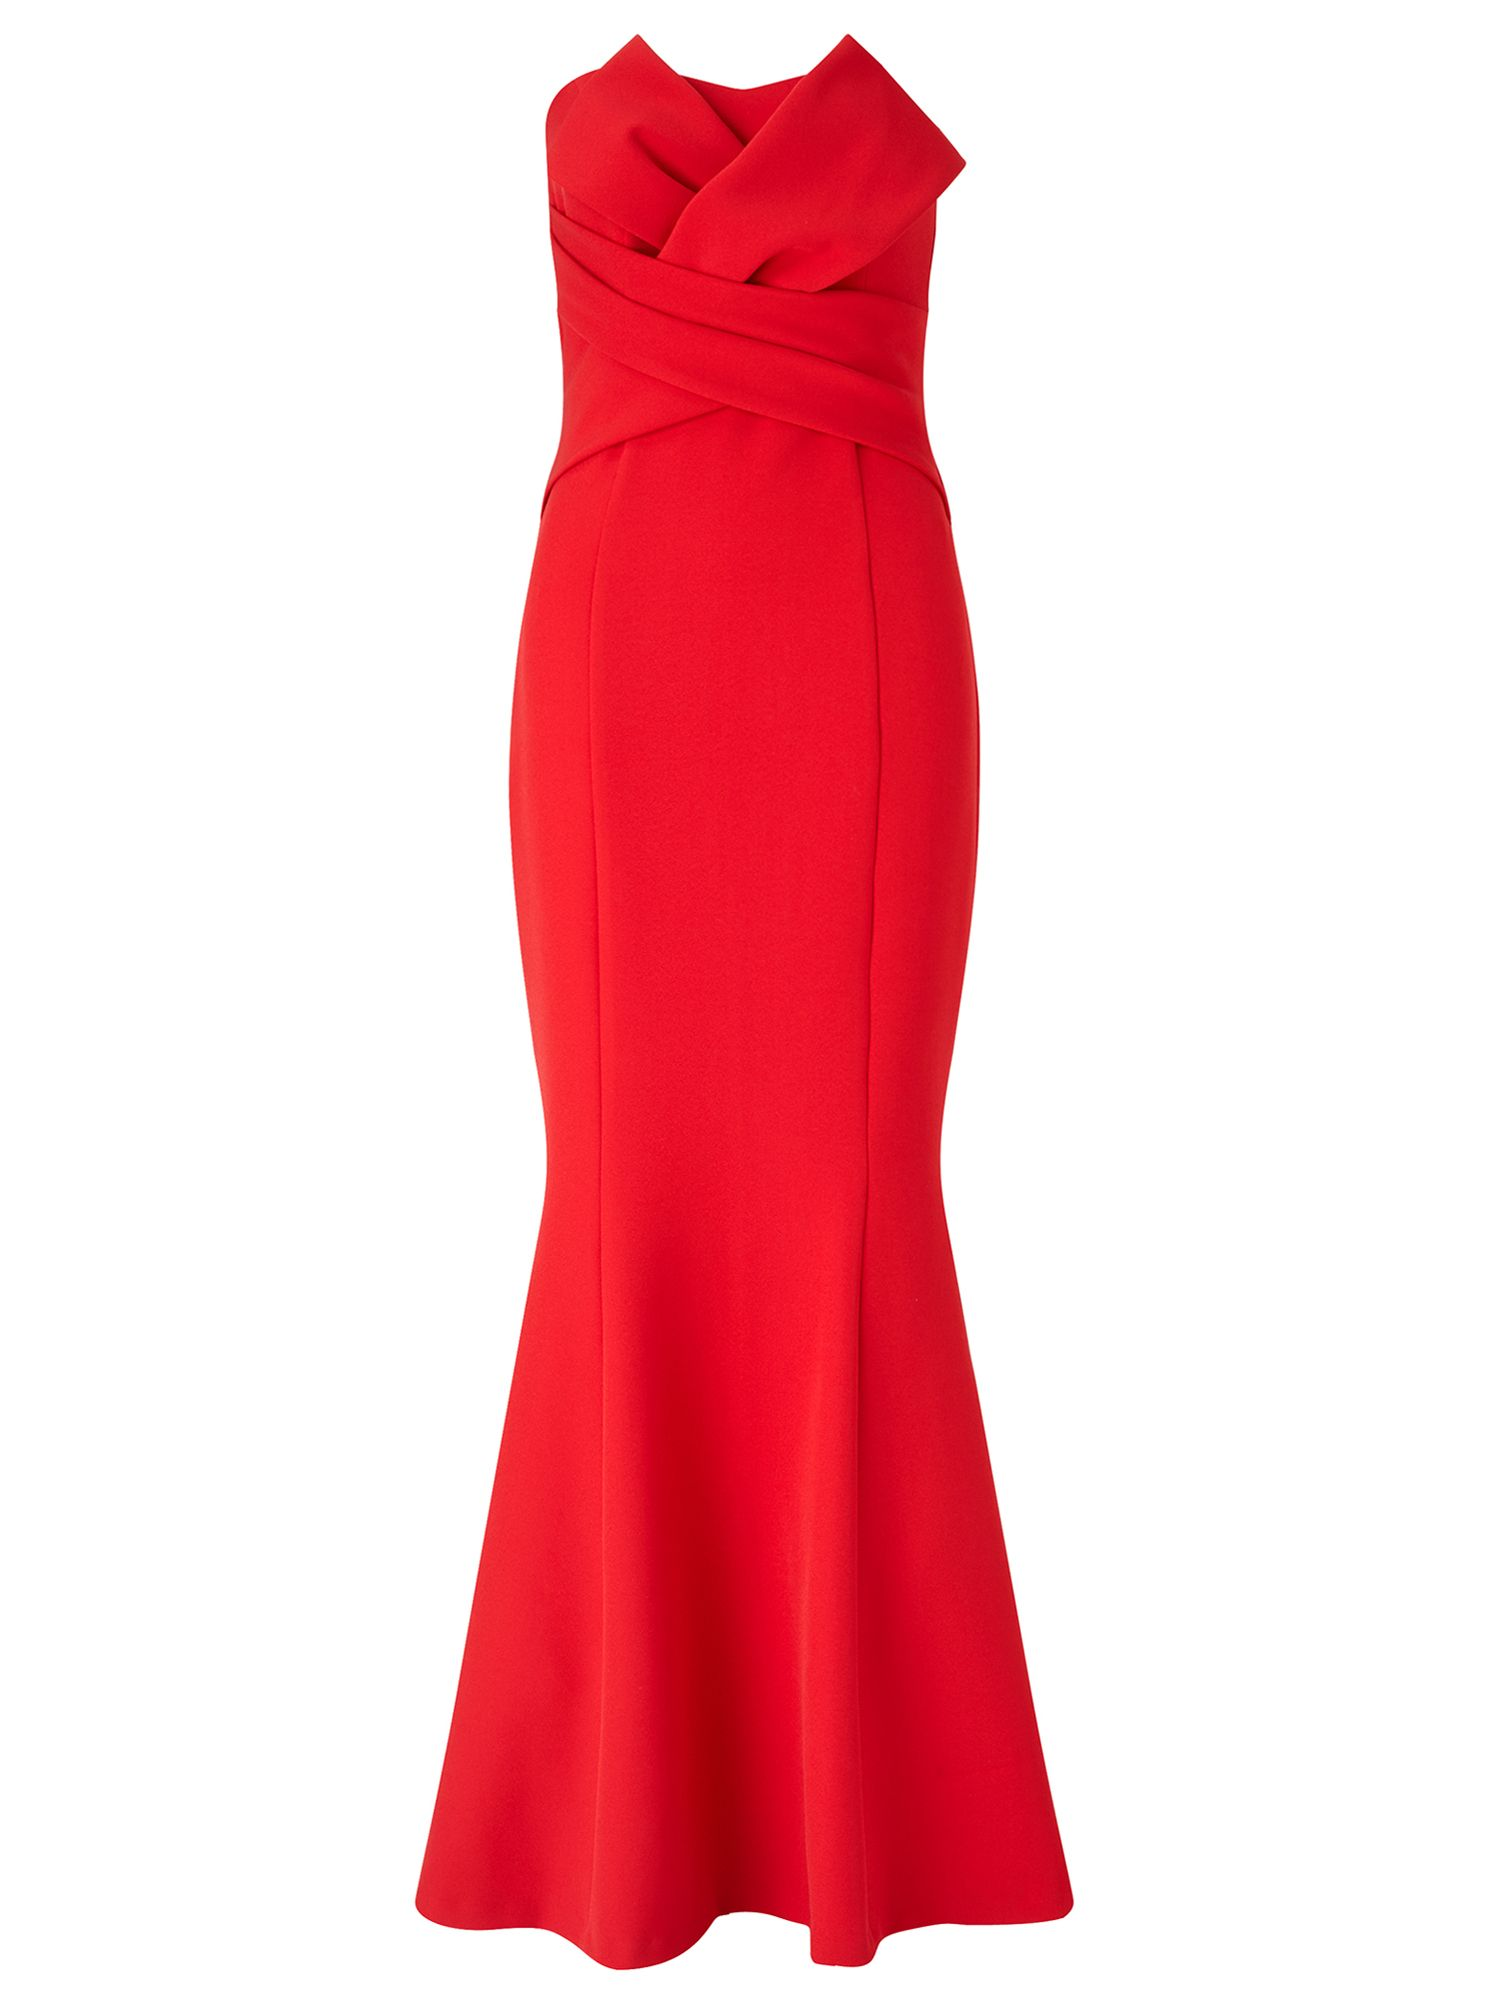 Ariella Katinka Structured Strapless Dress, Red